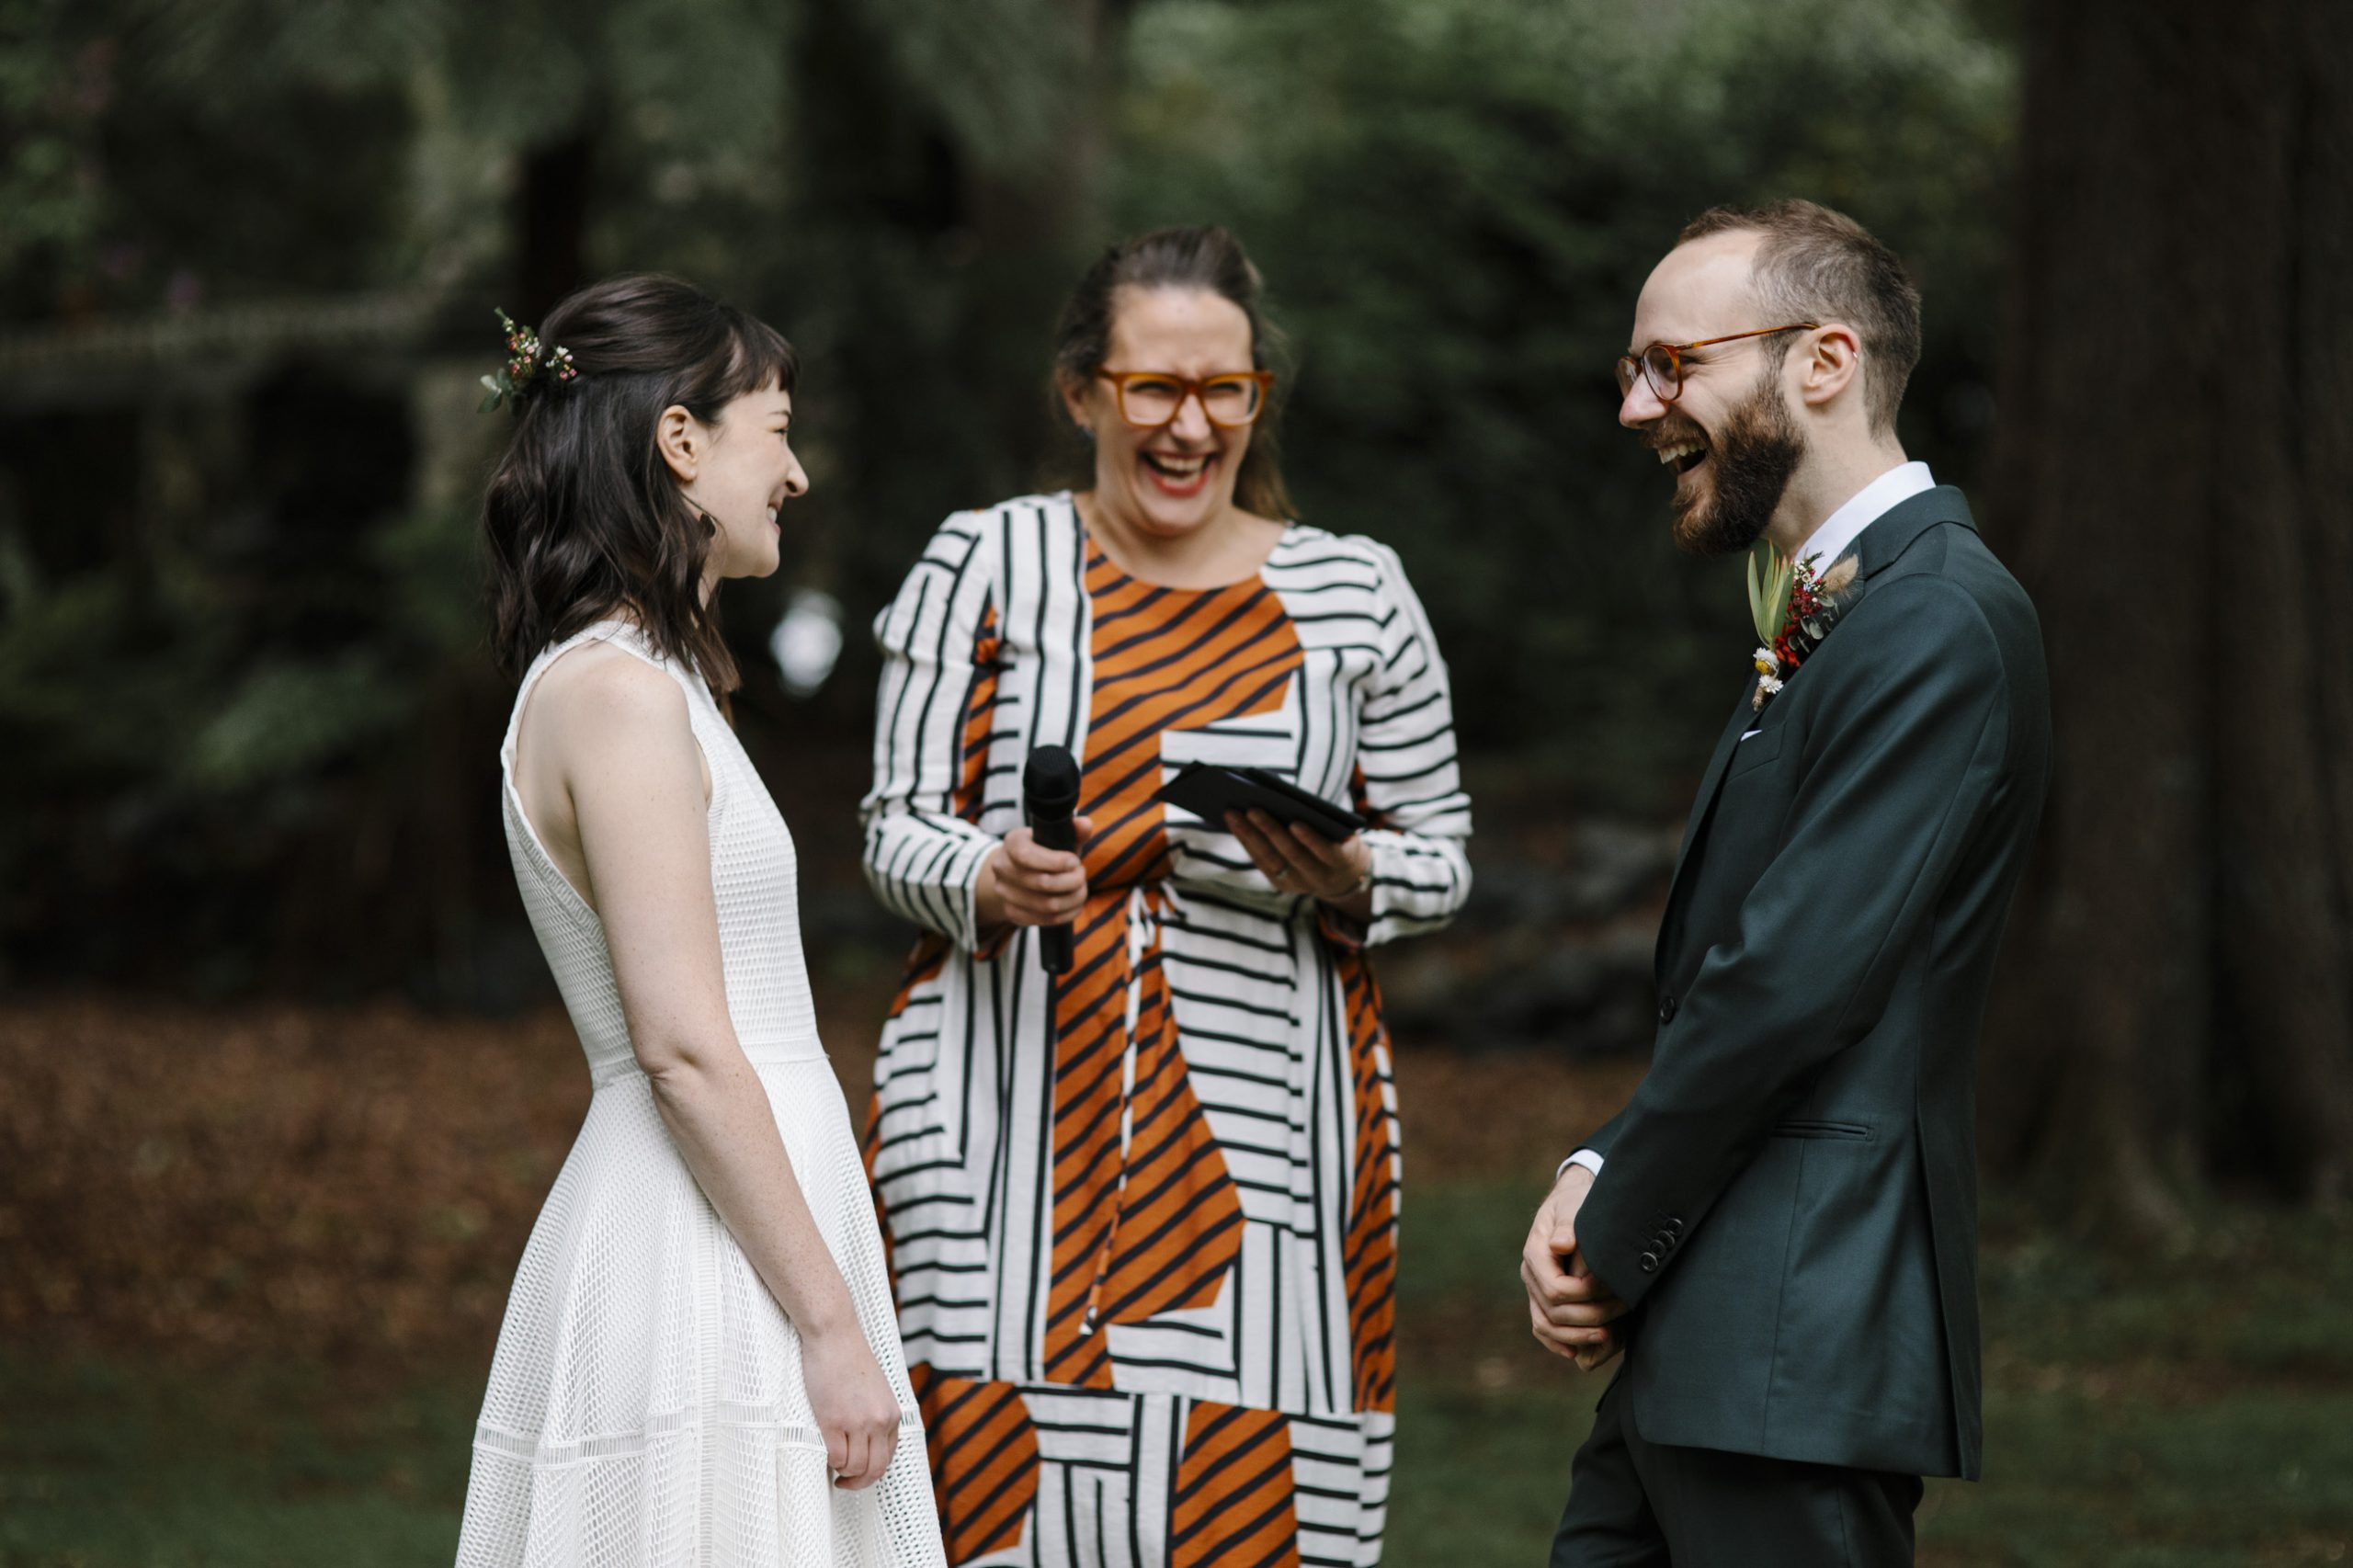 Eco-friendly inclusive marriage celebrant in Melbourne. Image by It's Beautiful Here.